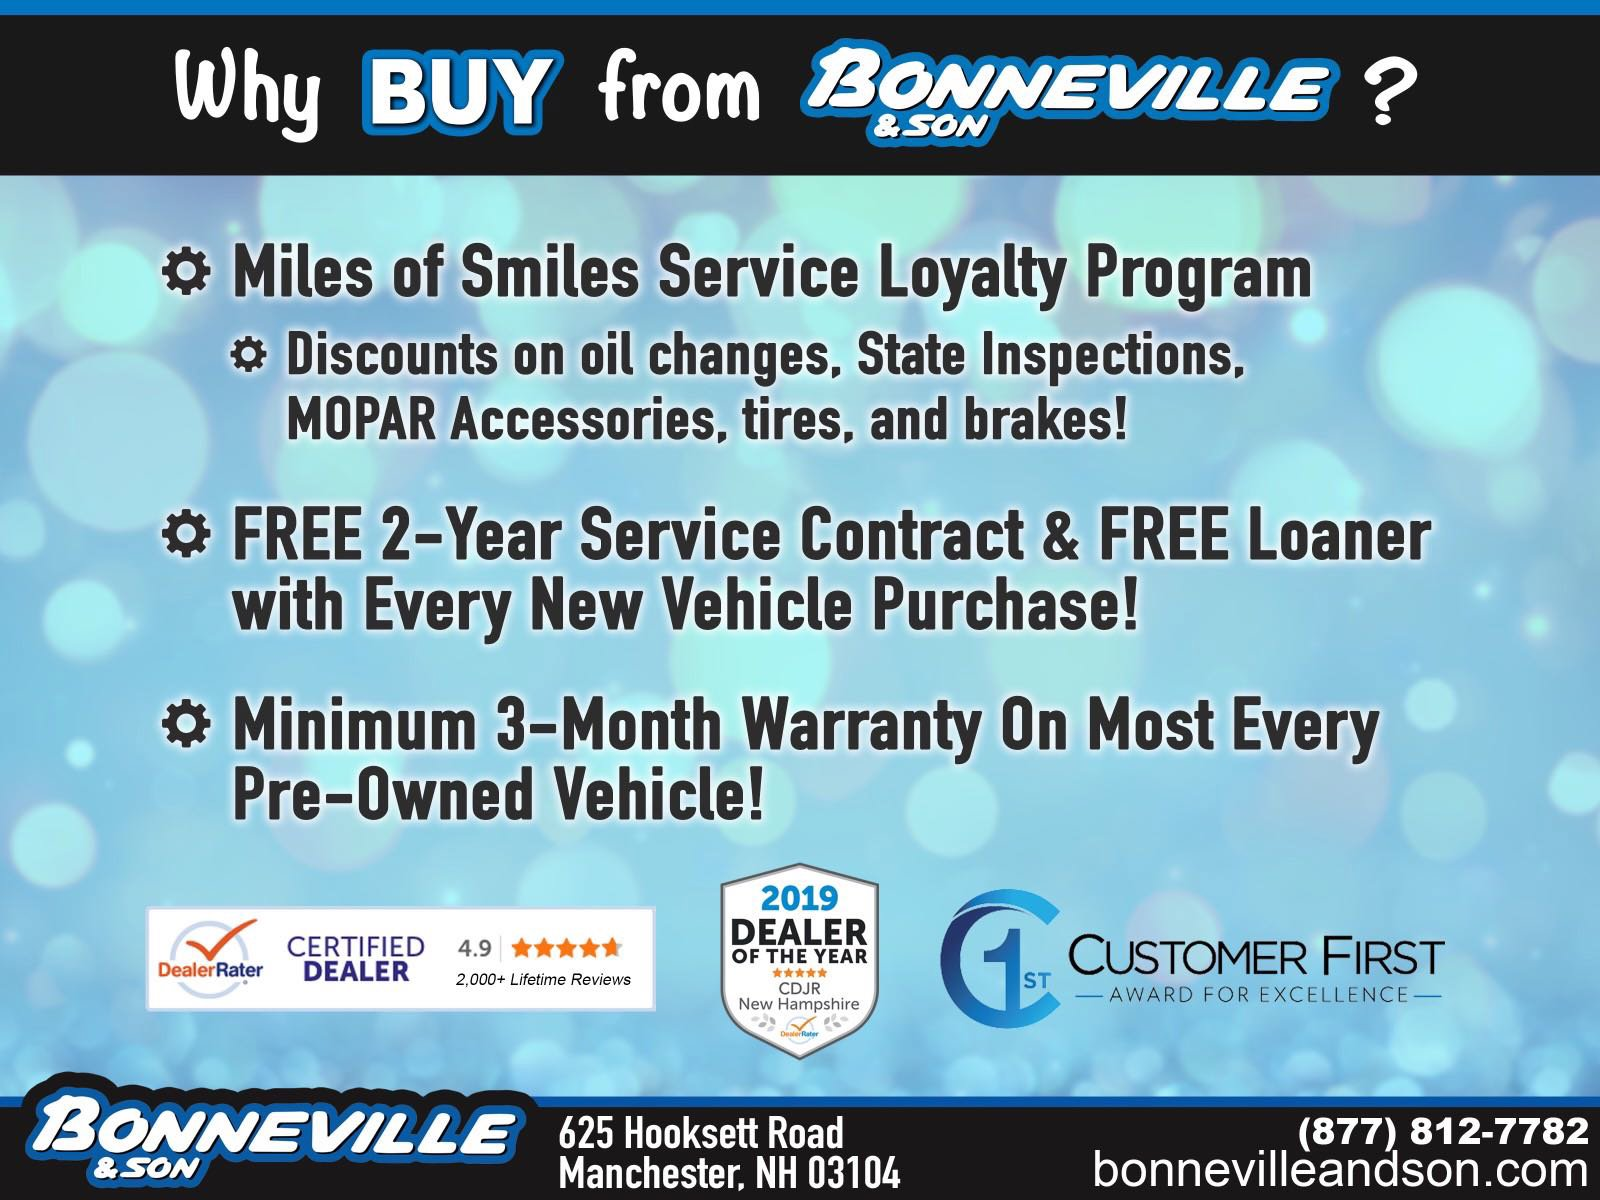 Bonneville And Son >> Bonneville And Son Chrysler Dodge Jeep Ram Manchester Nh